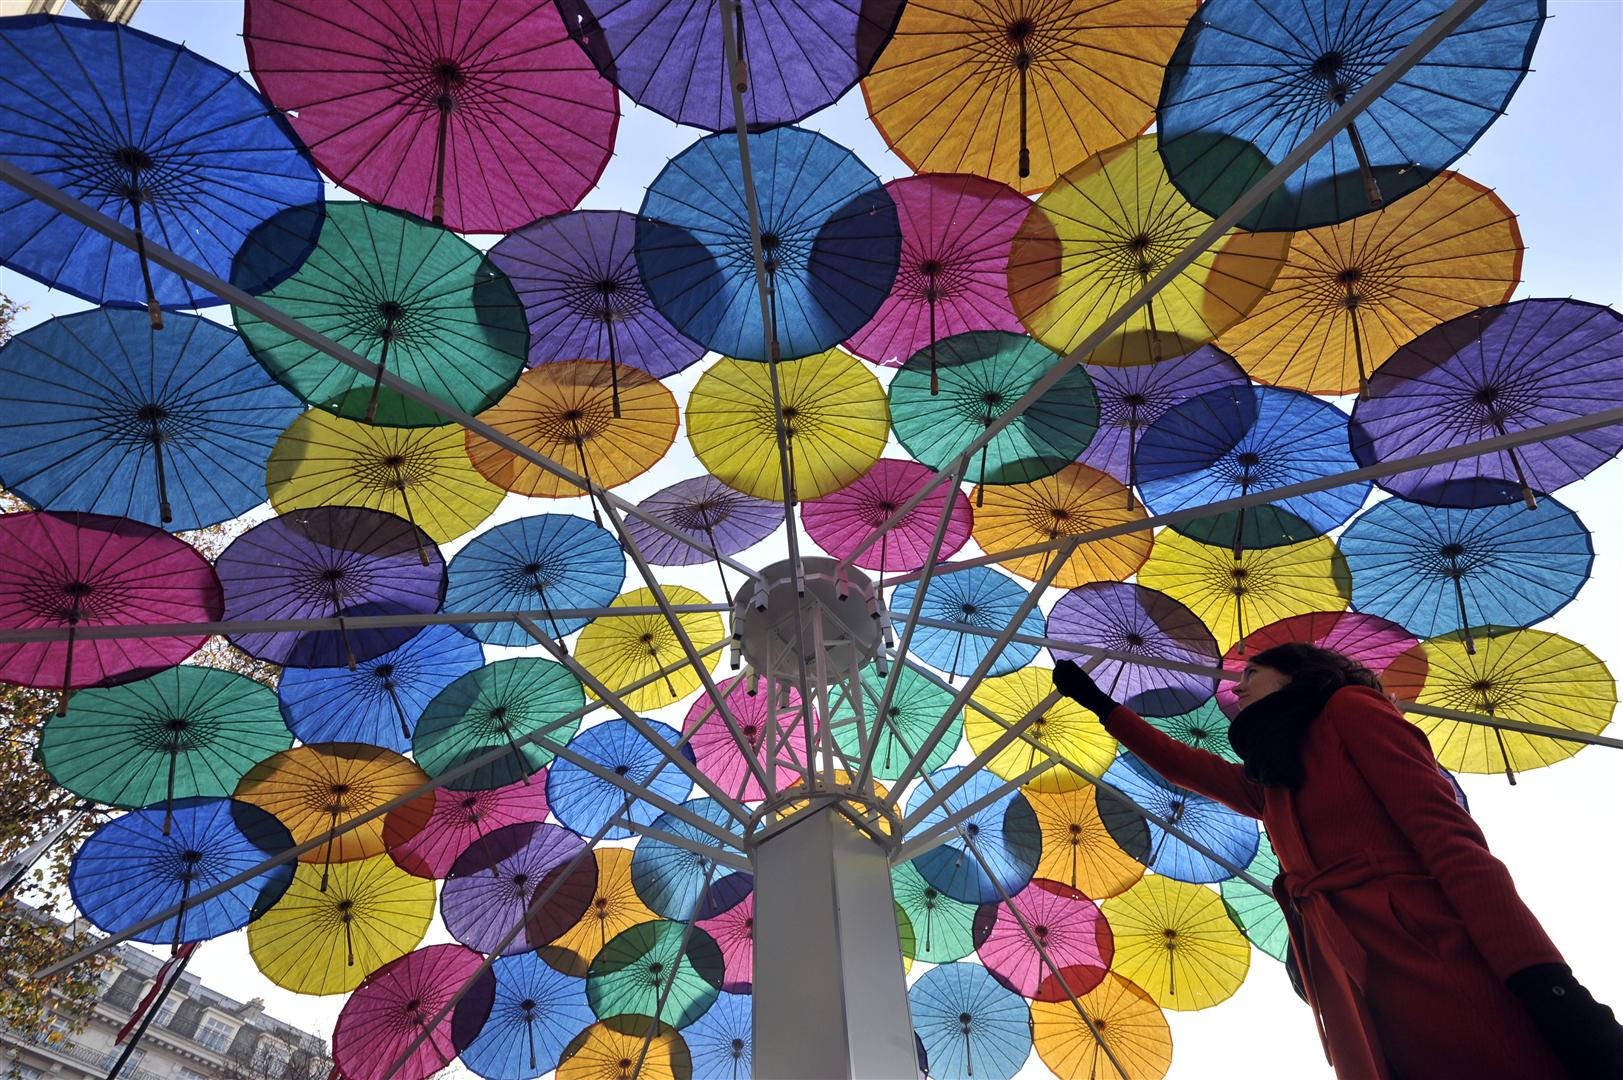 We designed and constructed London's largest collection of floating parasols, to formone giant, multi-coloured, cocktail umbrella stationed in Marble Arch.